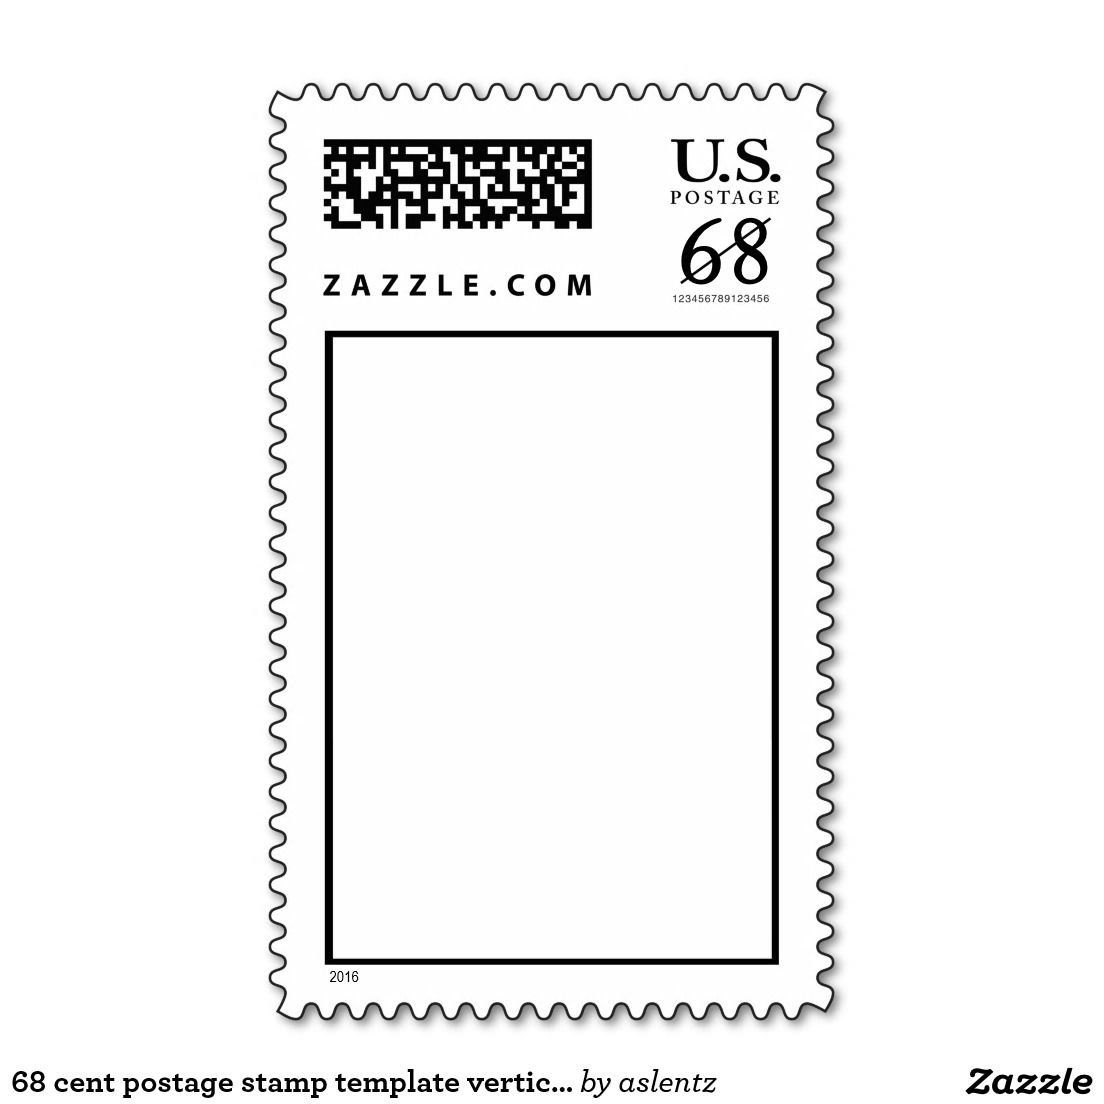 new template for square envelopes or mailings over one ounce 68